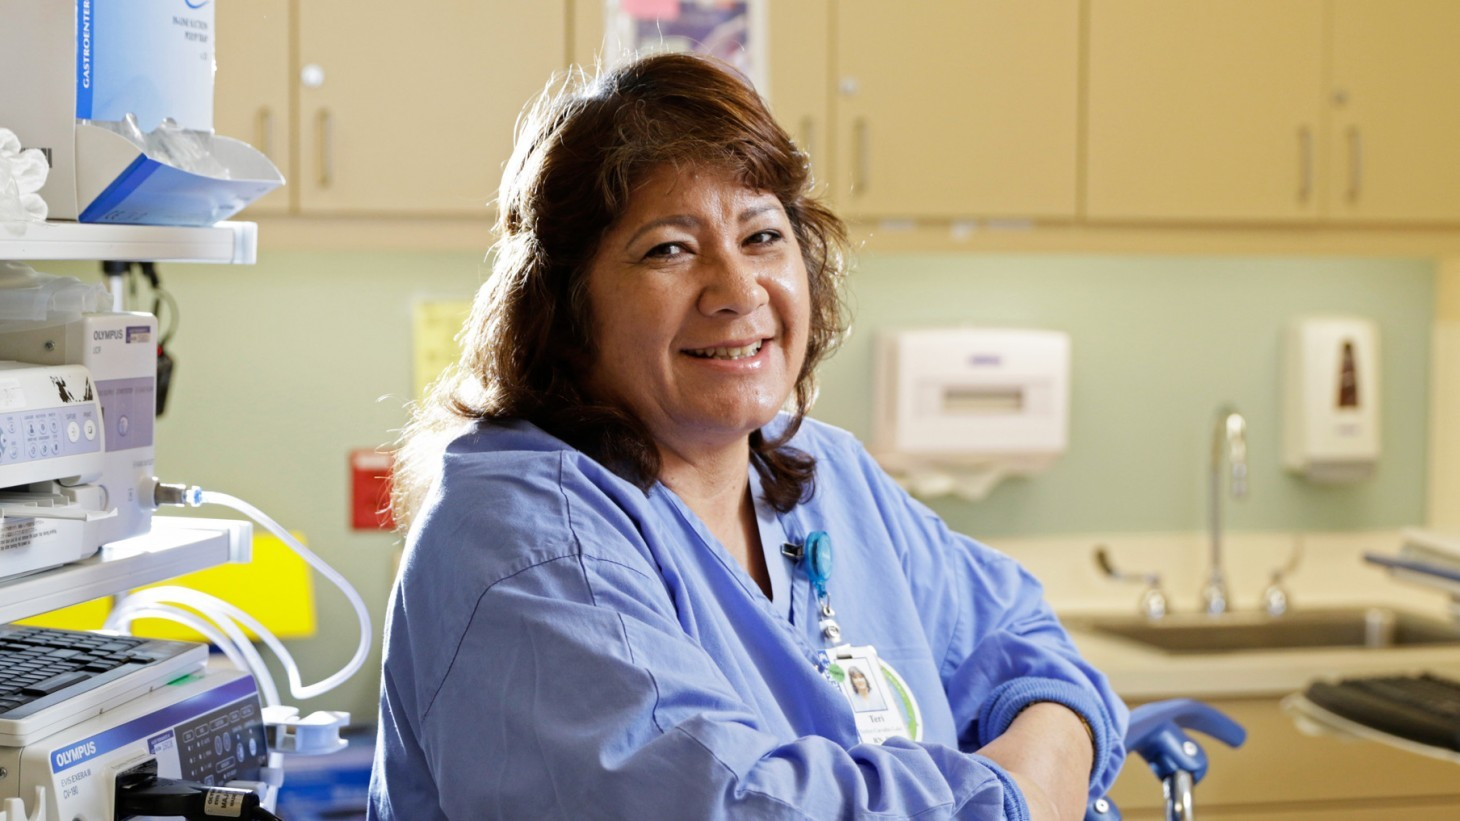 Teri Carvalho Luke, RN, UBT consultant, Hawaii Nurses Association, OPEIU Local 50 (Mapunapuna Clinic, Hawaii)